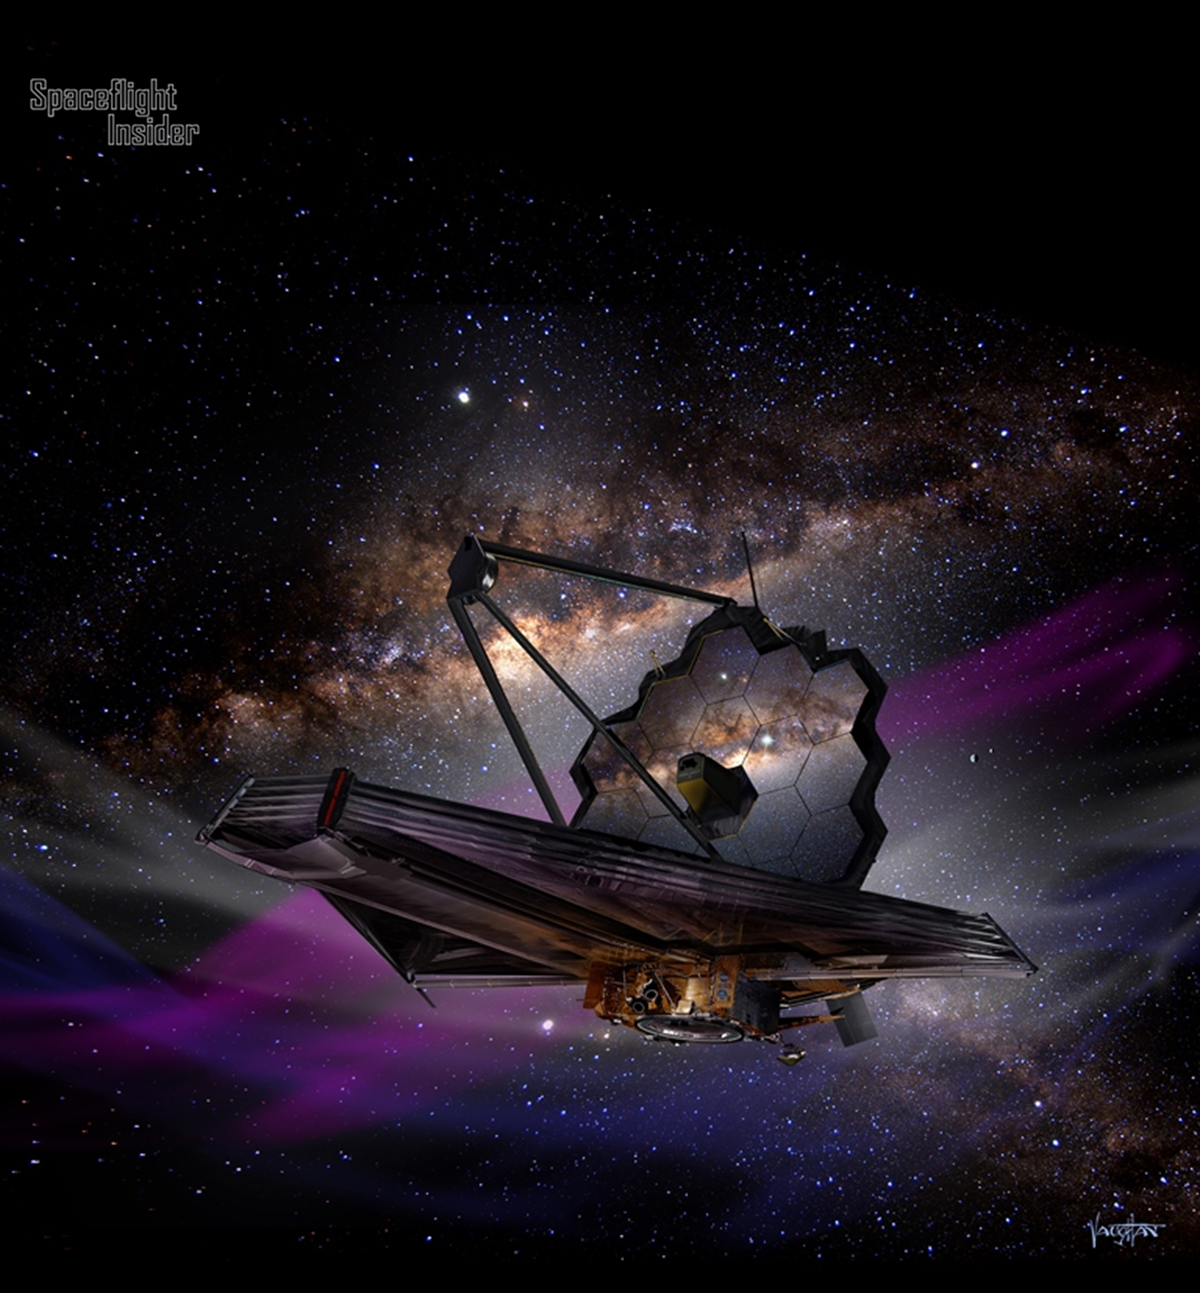 Artist's concept of the James Webb Space Telescope (JWST). Image Credit: James Vaughan / SpaceFlight Insider